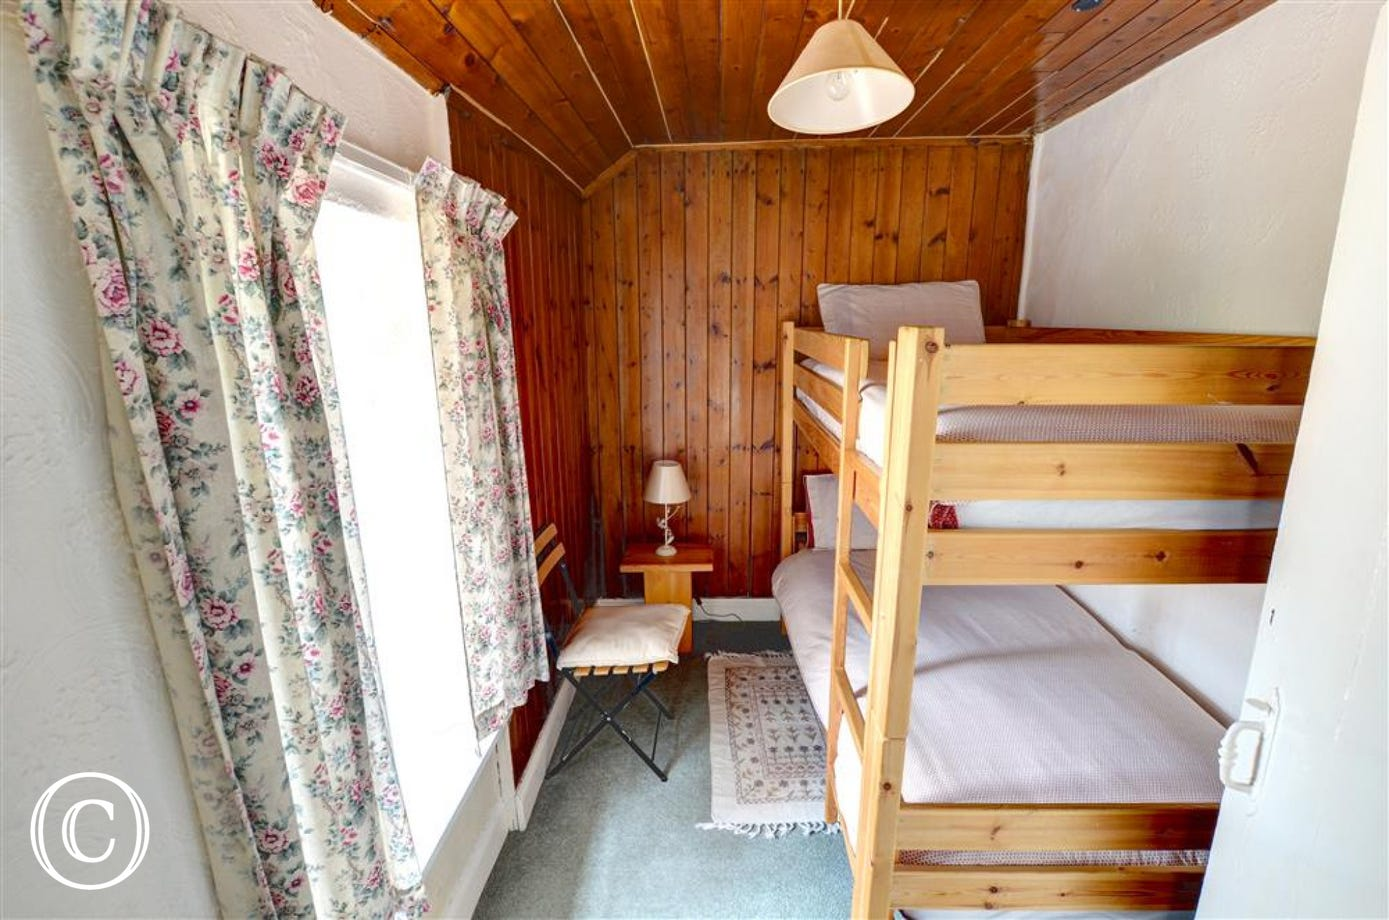 Twin Bedroom with bunk beds and a chest of drawers behind the door.